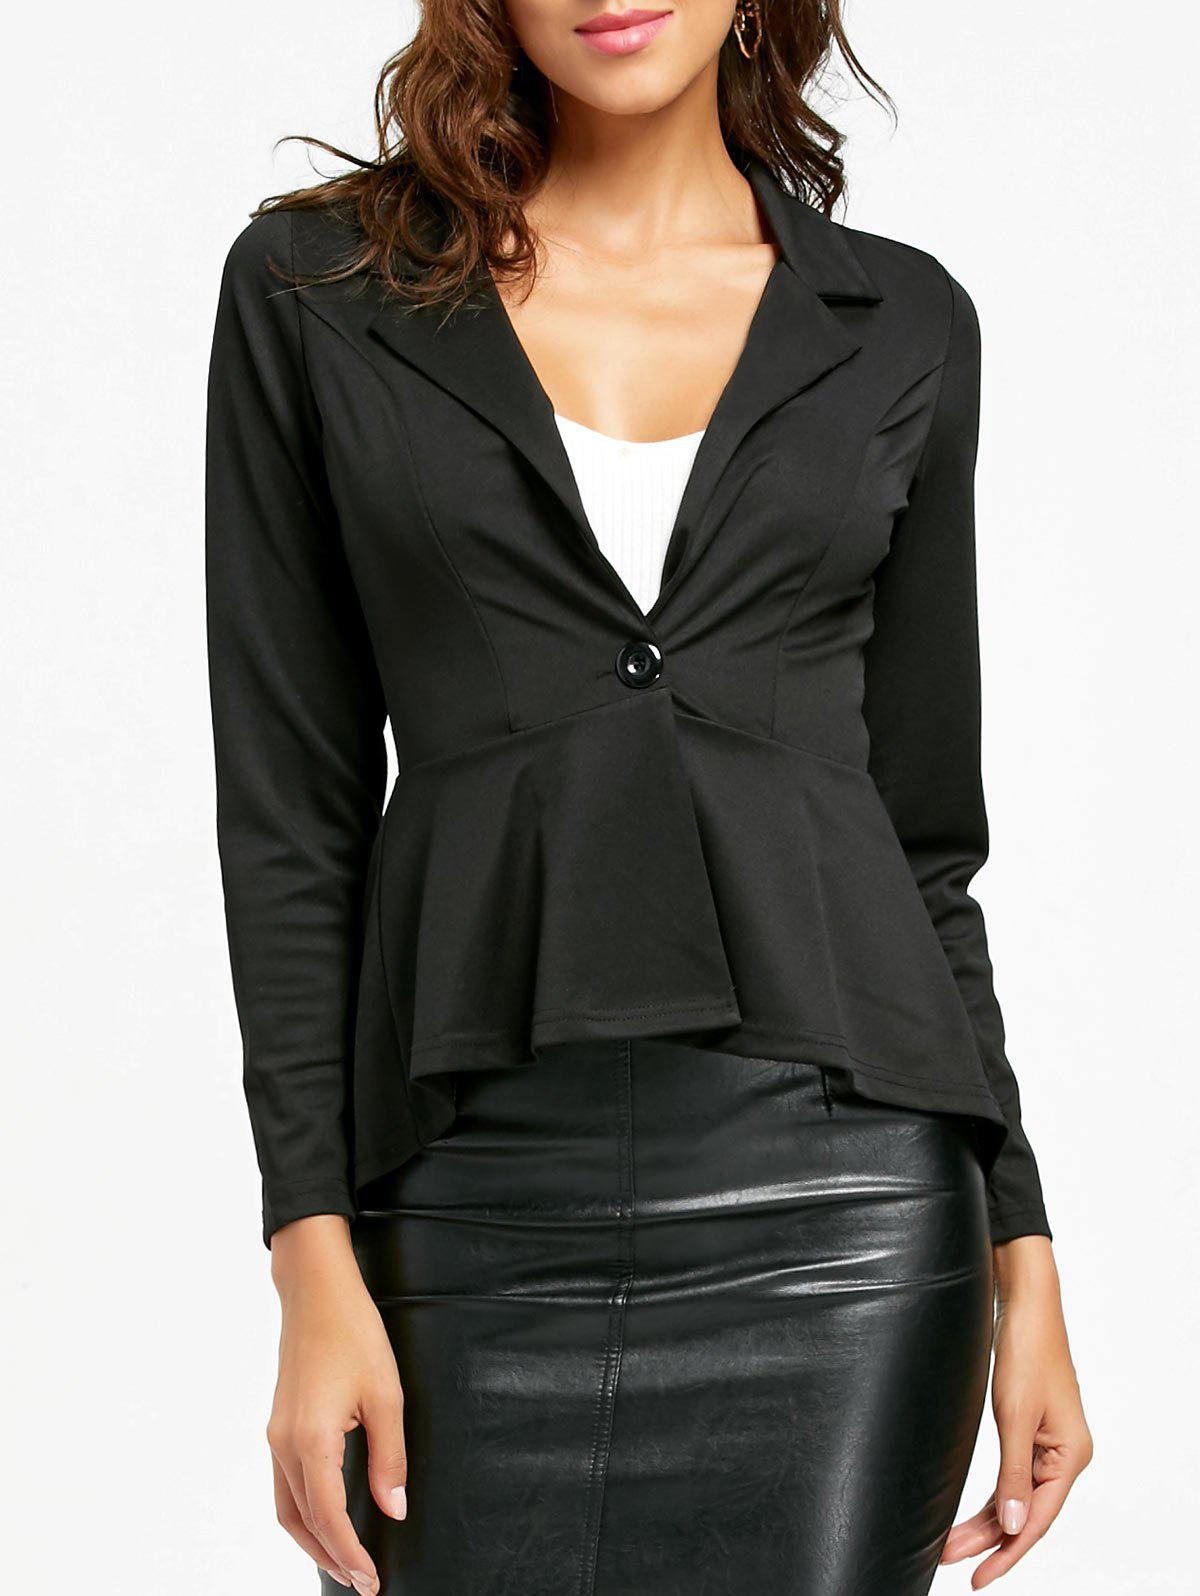 Flounce High Low One Button Blazer - Noir L